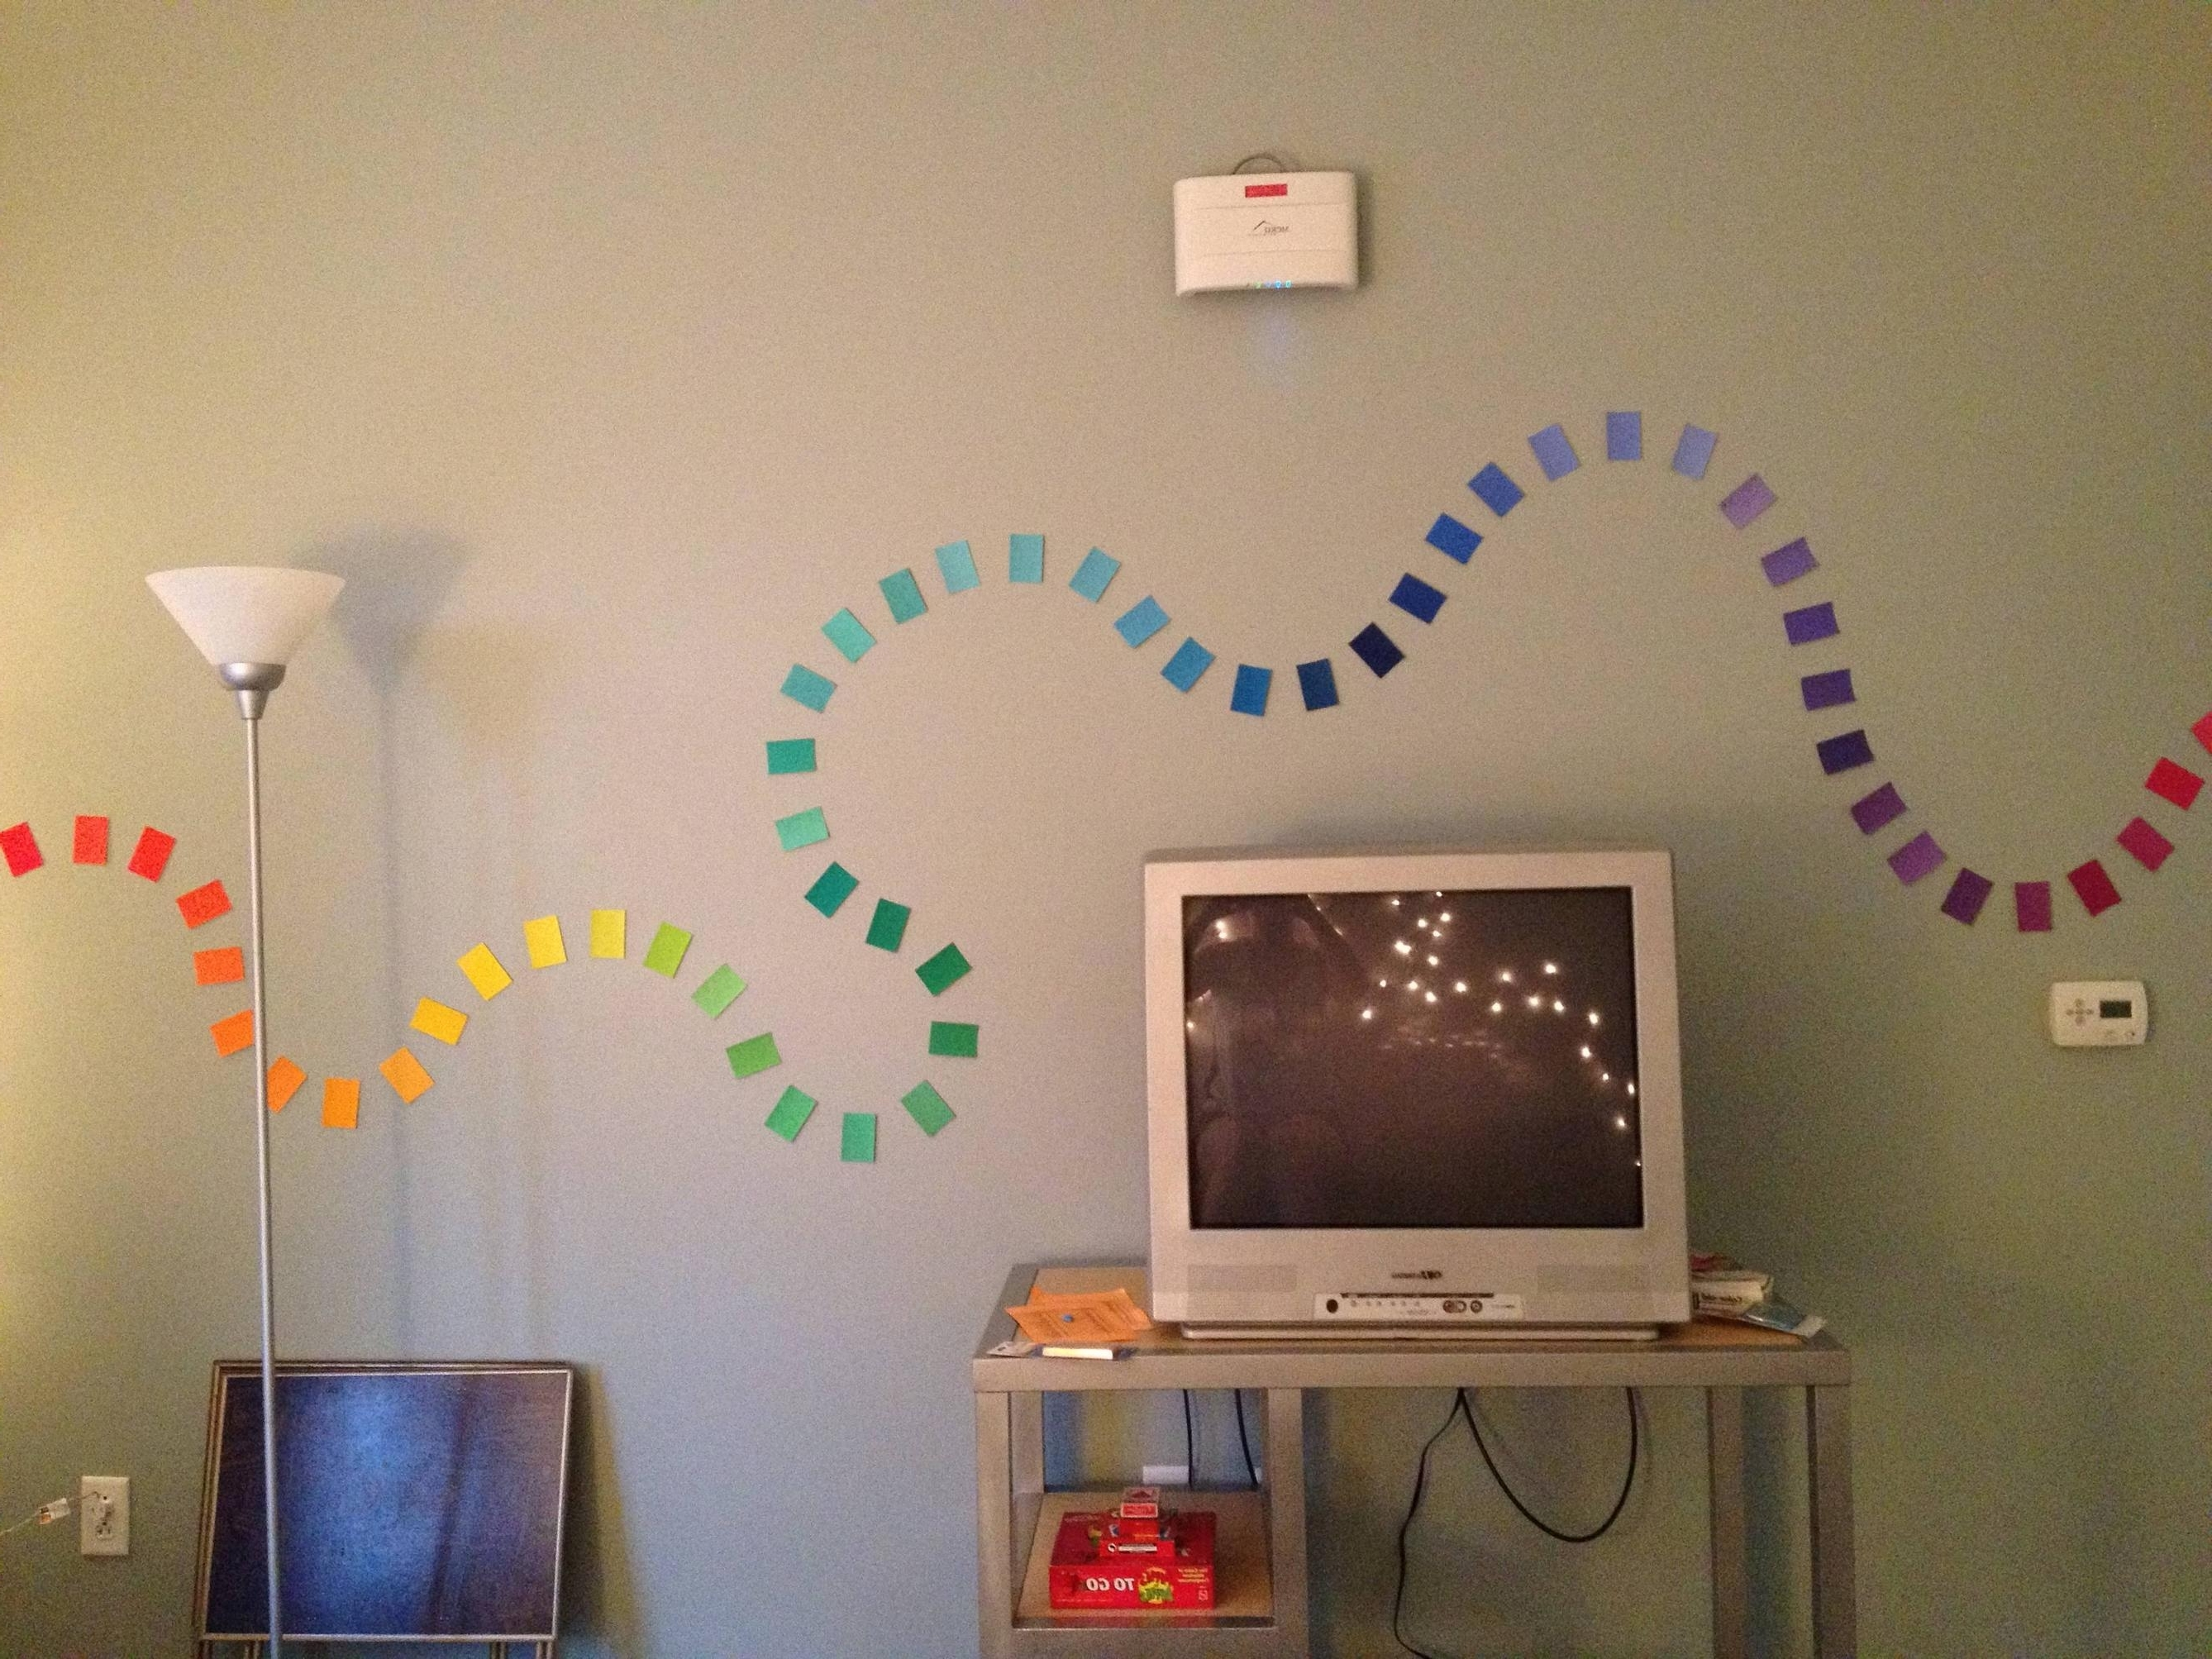 Home Decorating With Regard To Newest Paint Swatch Wall Art (View 3 of 15)